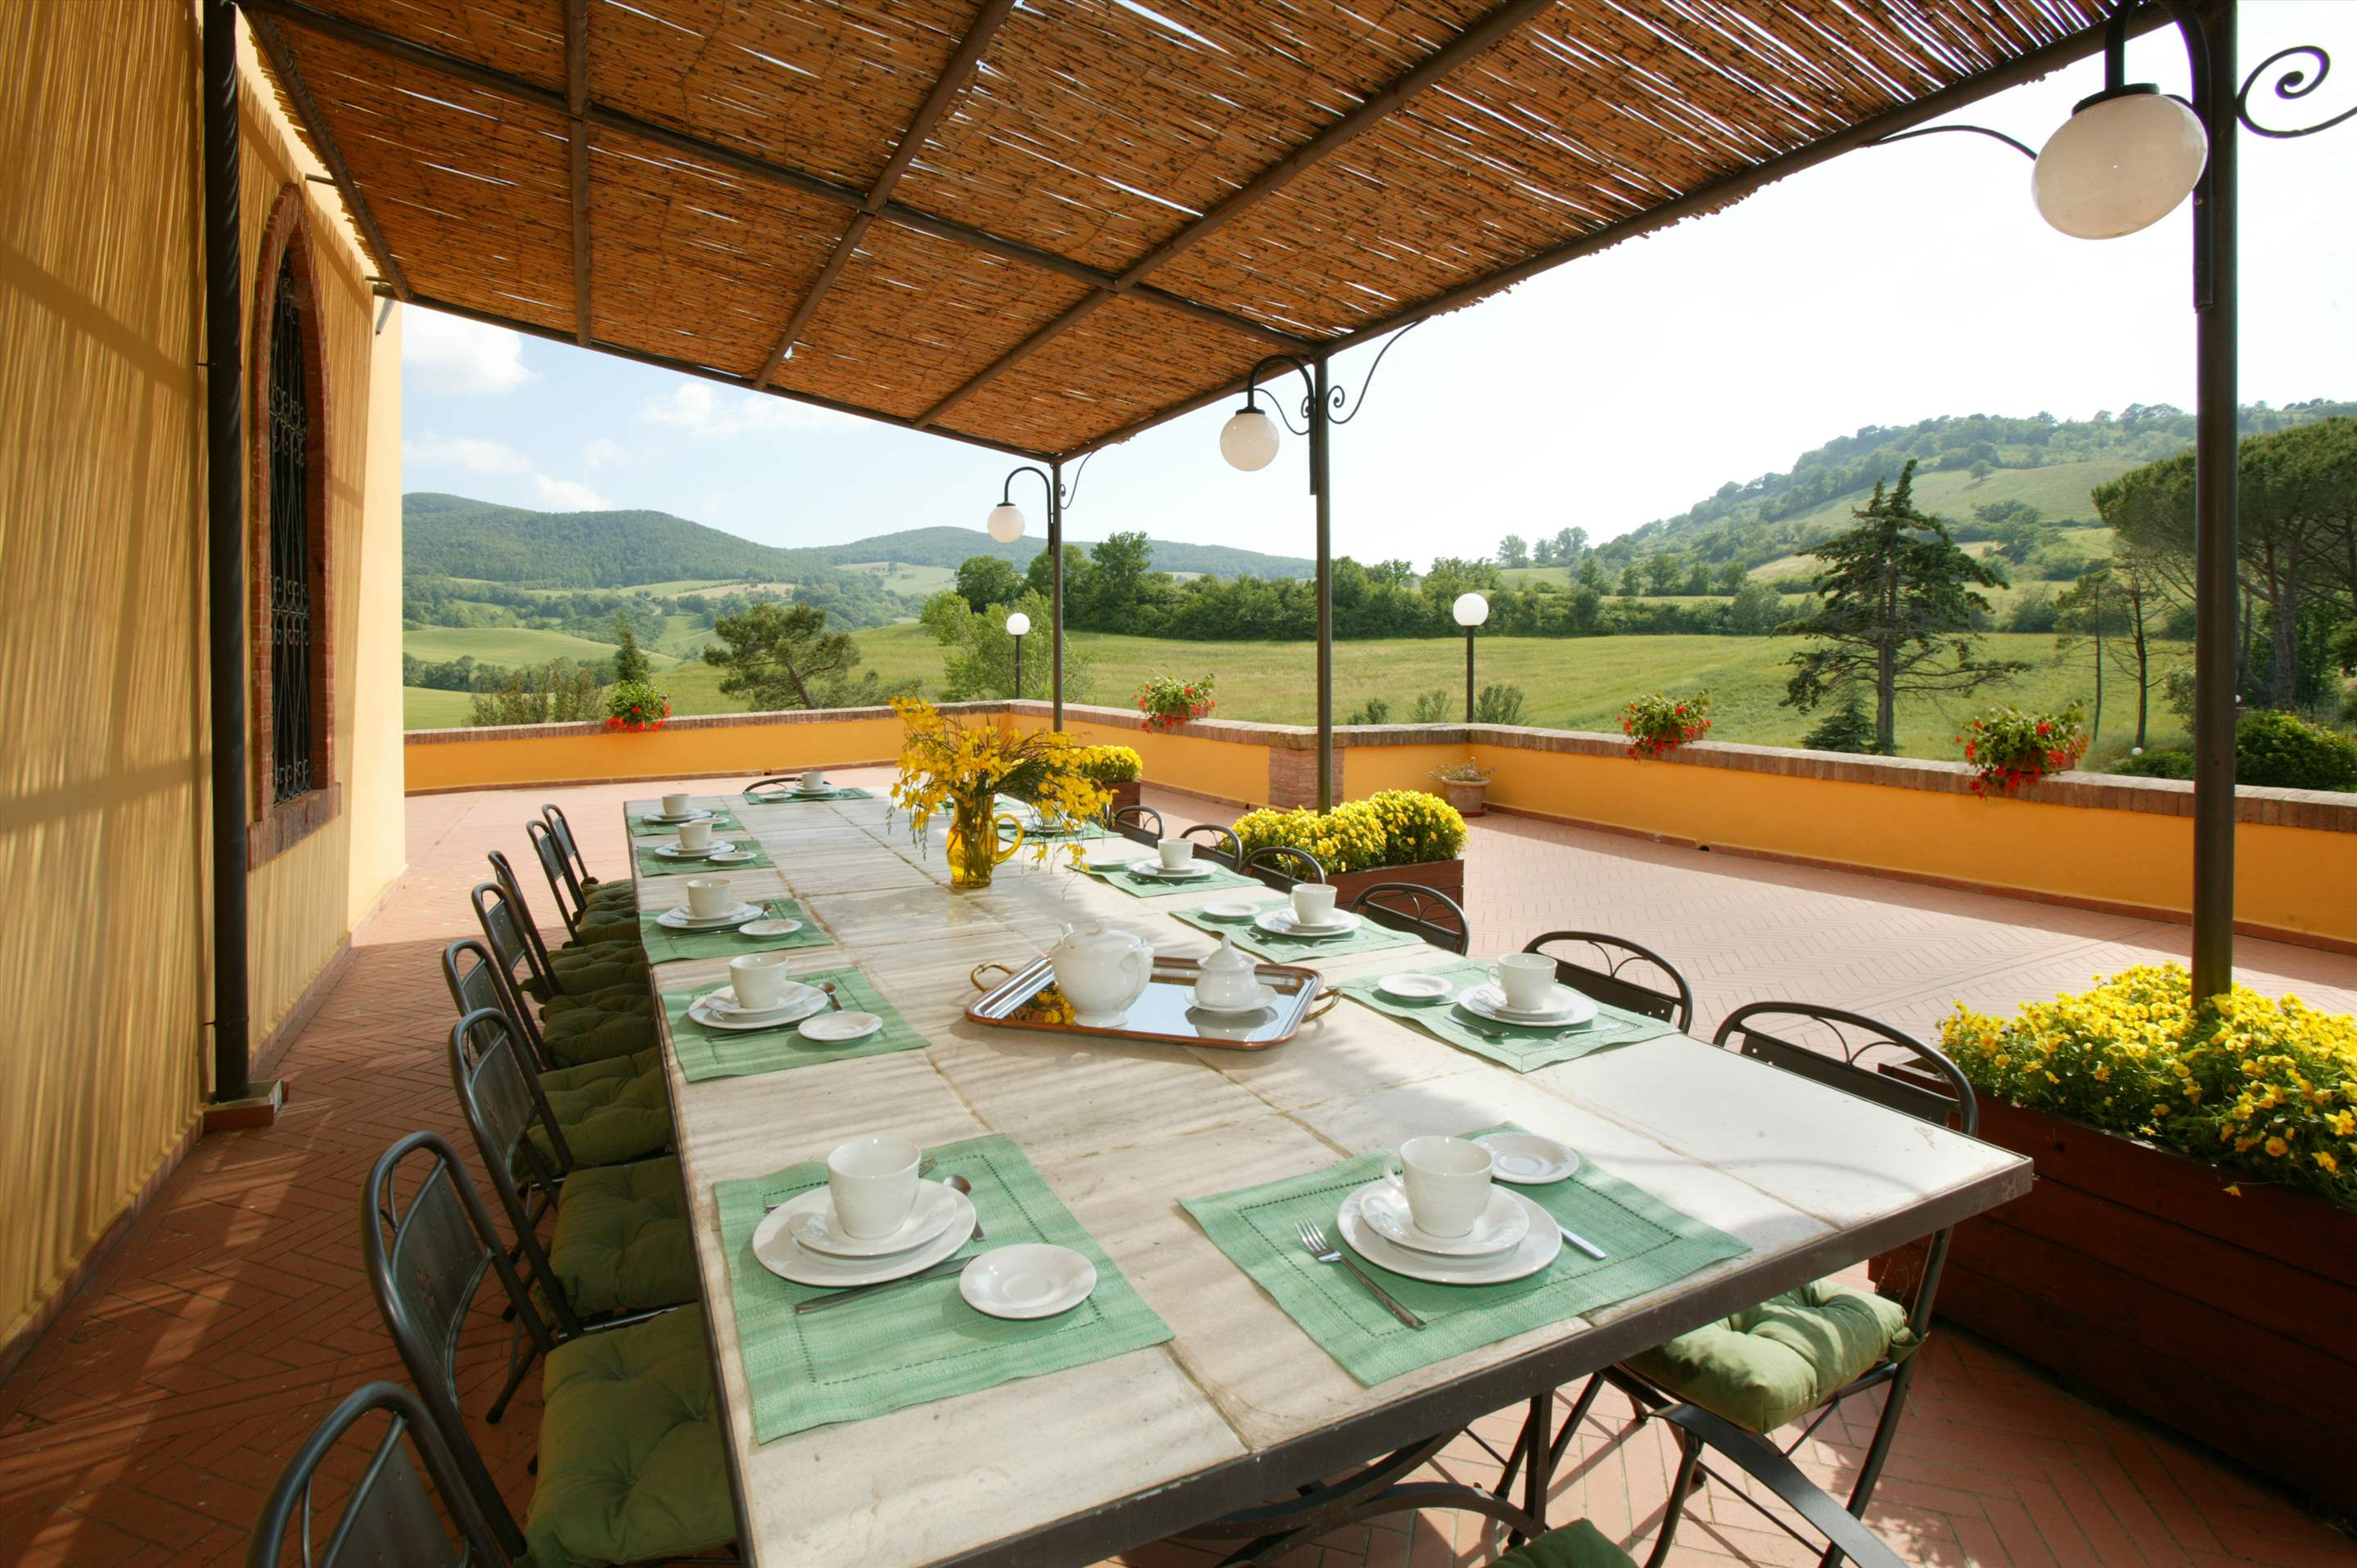 Villa Di Archi & Dependance, 9 bedroom villa in Tuscany Coast, Tuscany Photo #4